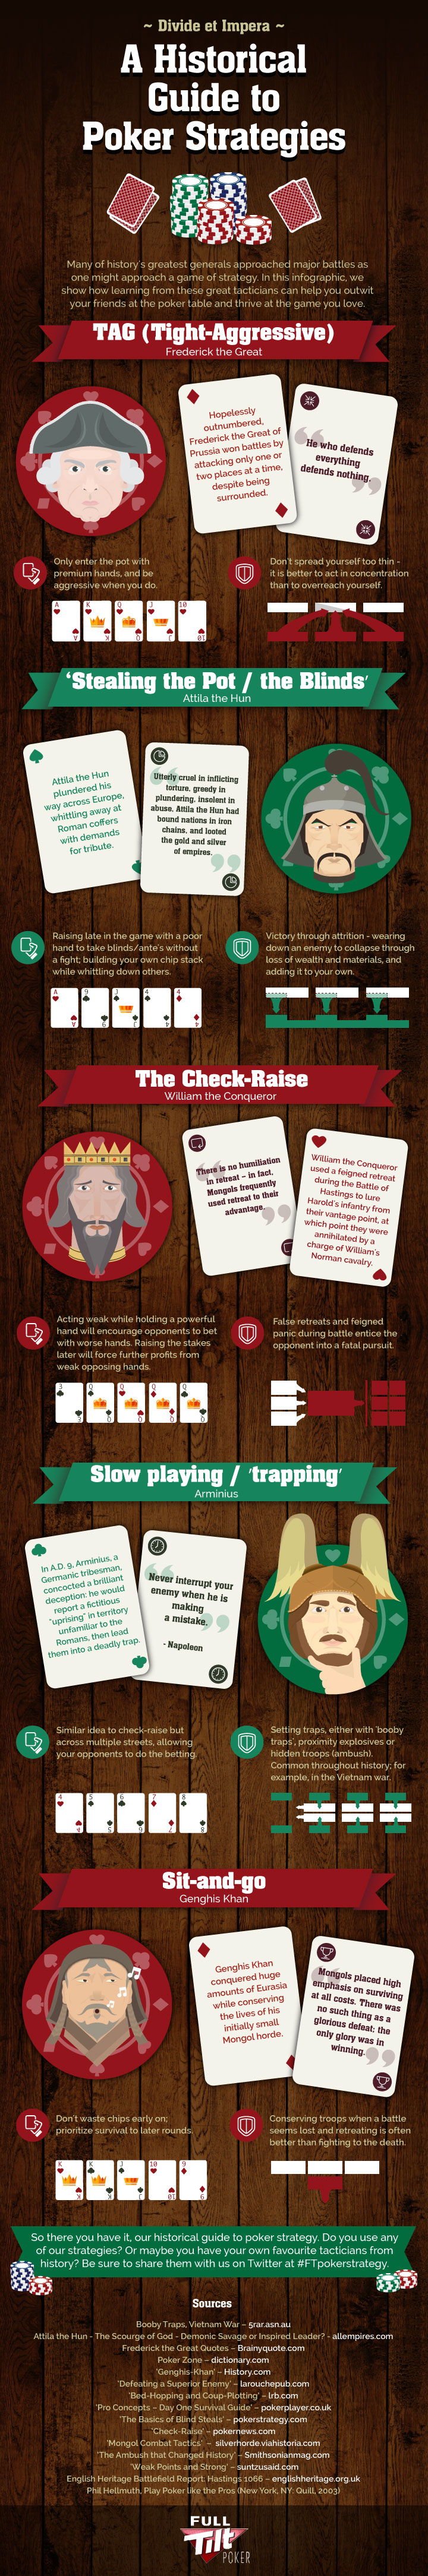 A Historical Guide To Poker Strategies